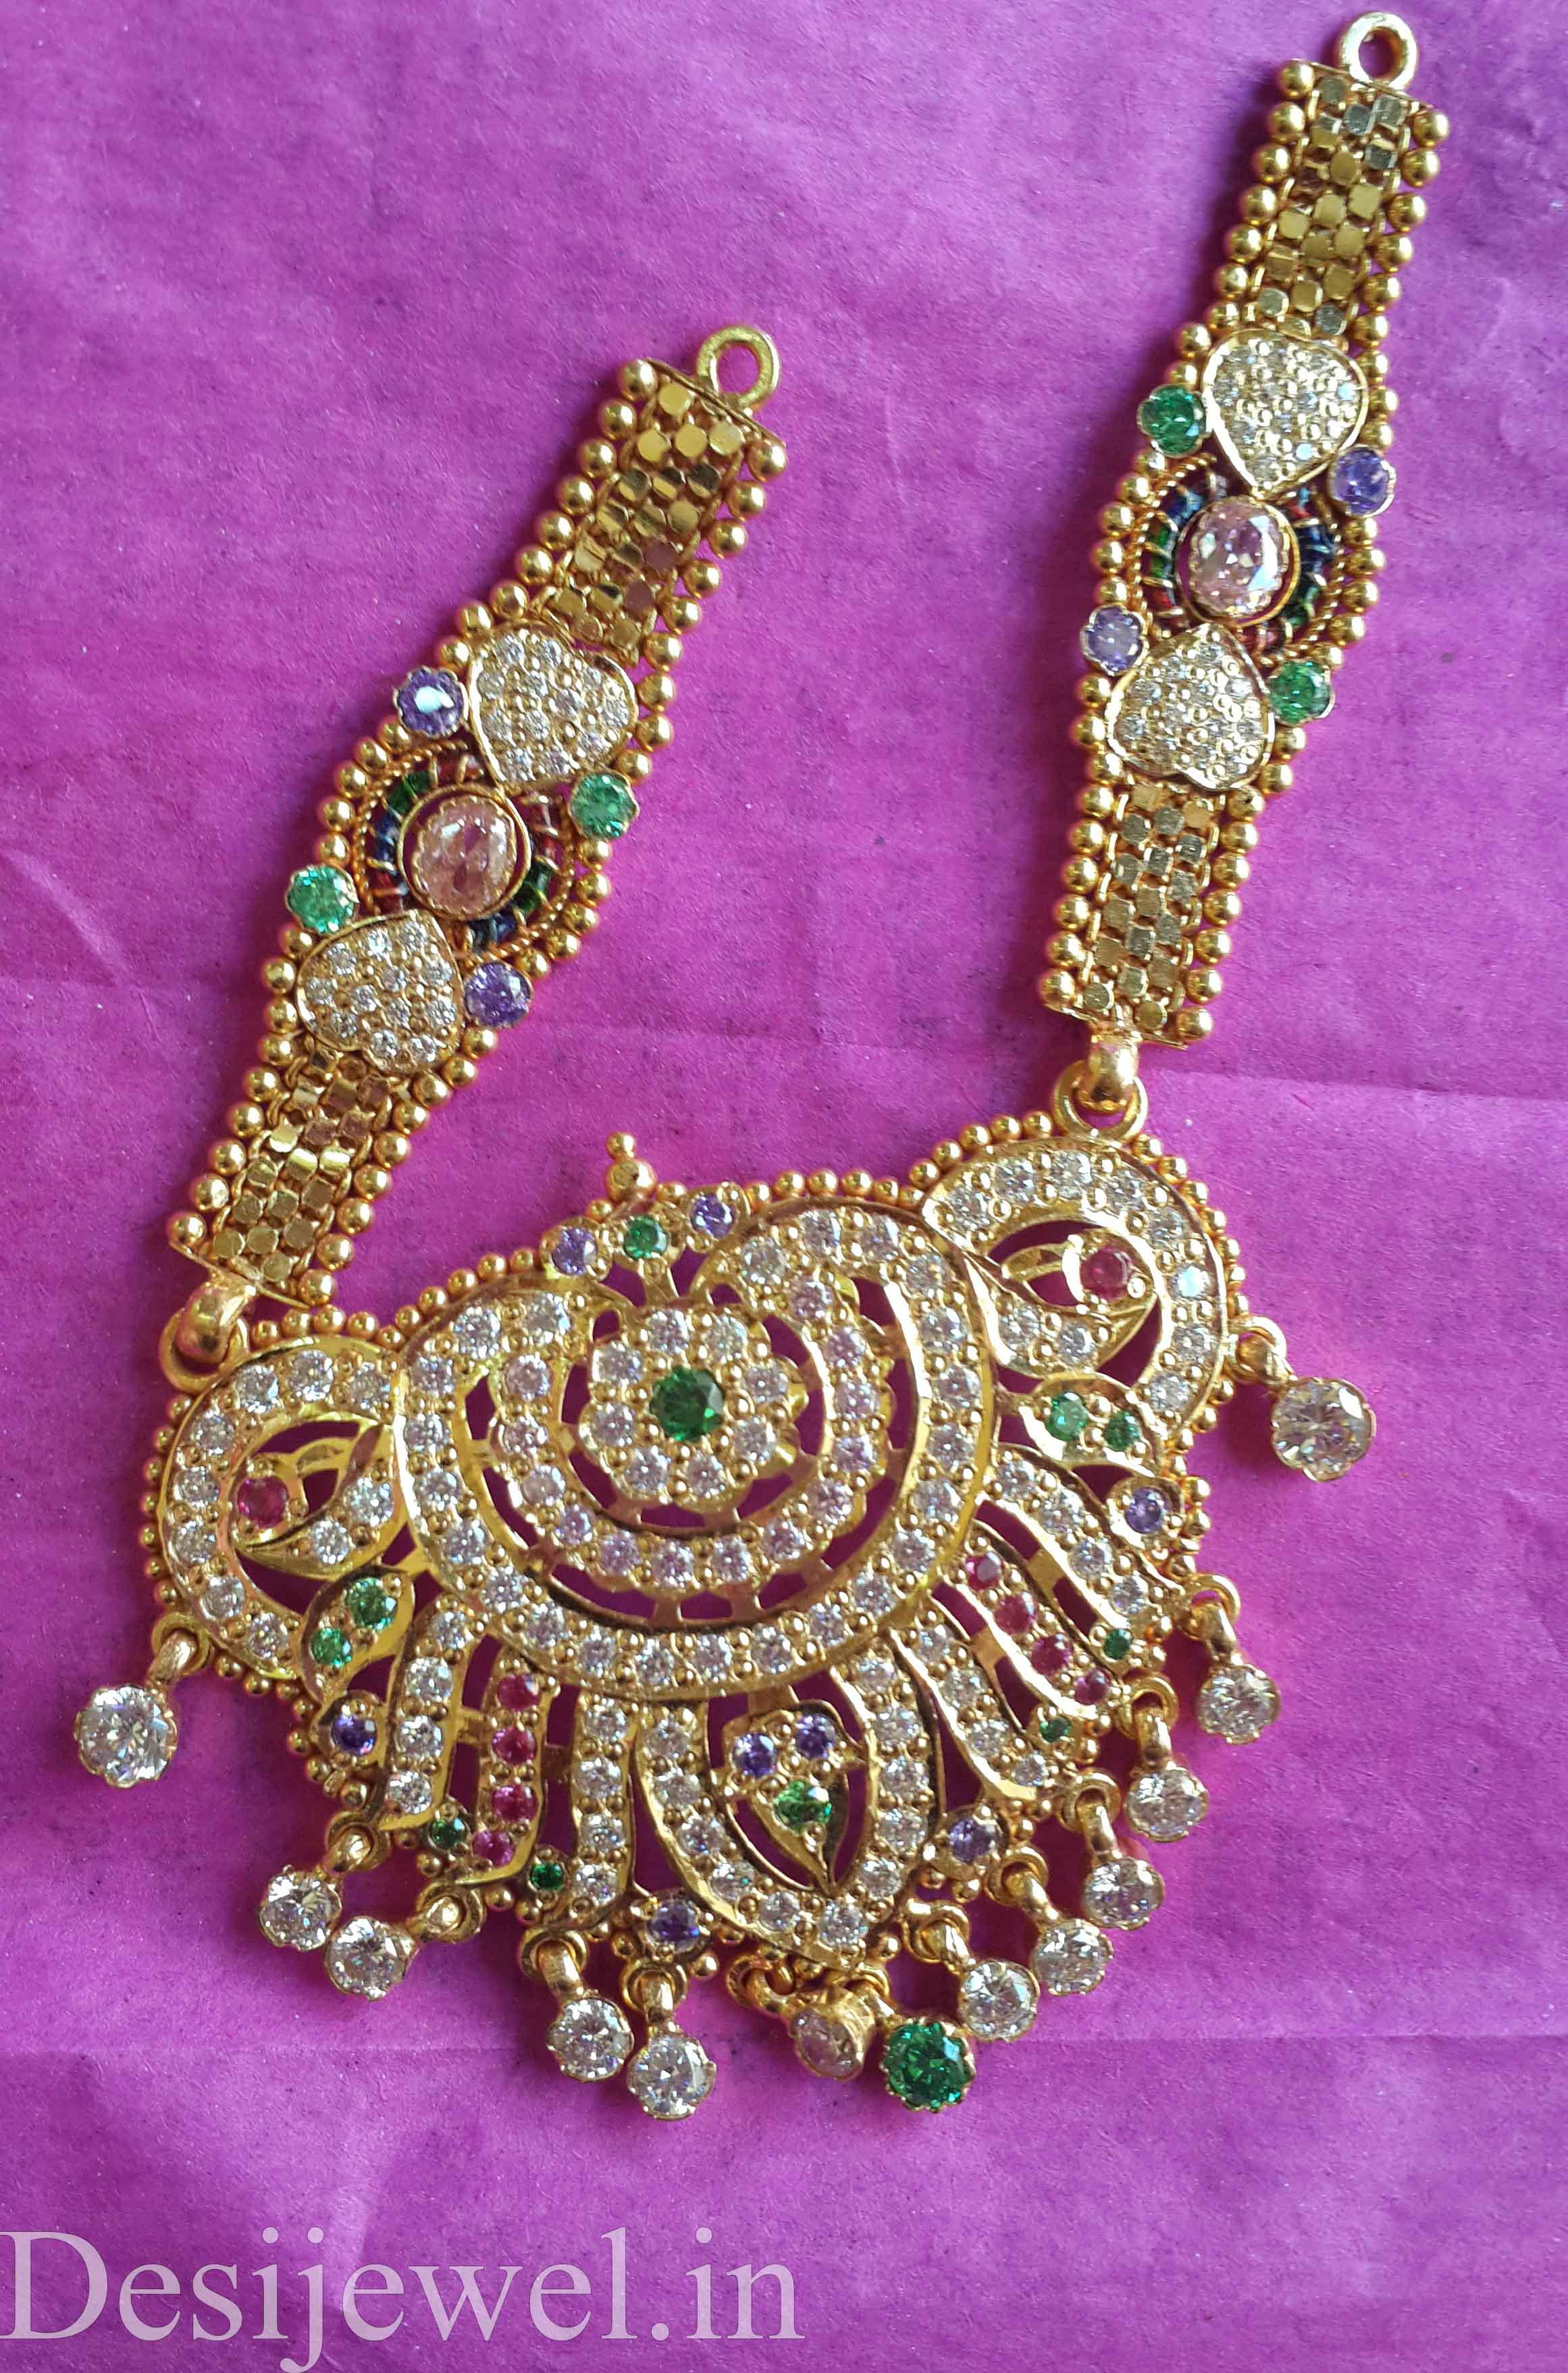 Marwadi Rajasthani Desi gold Mangalsutra And Weight is 10-12 gm